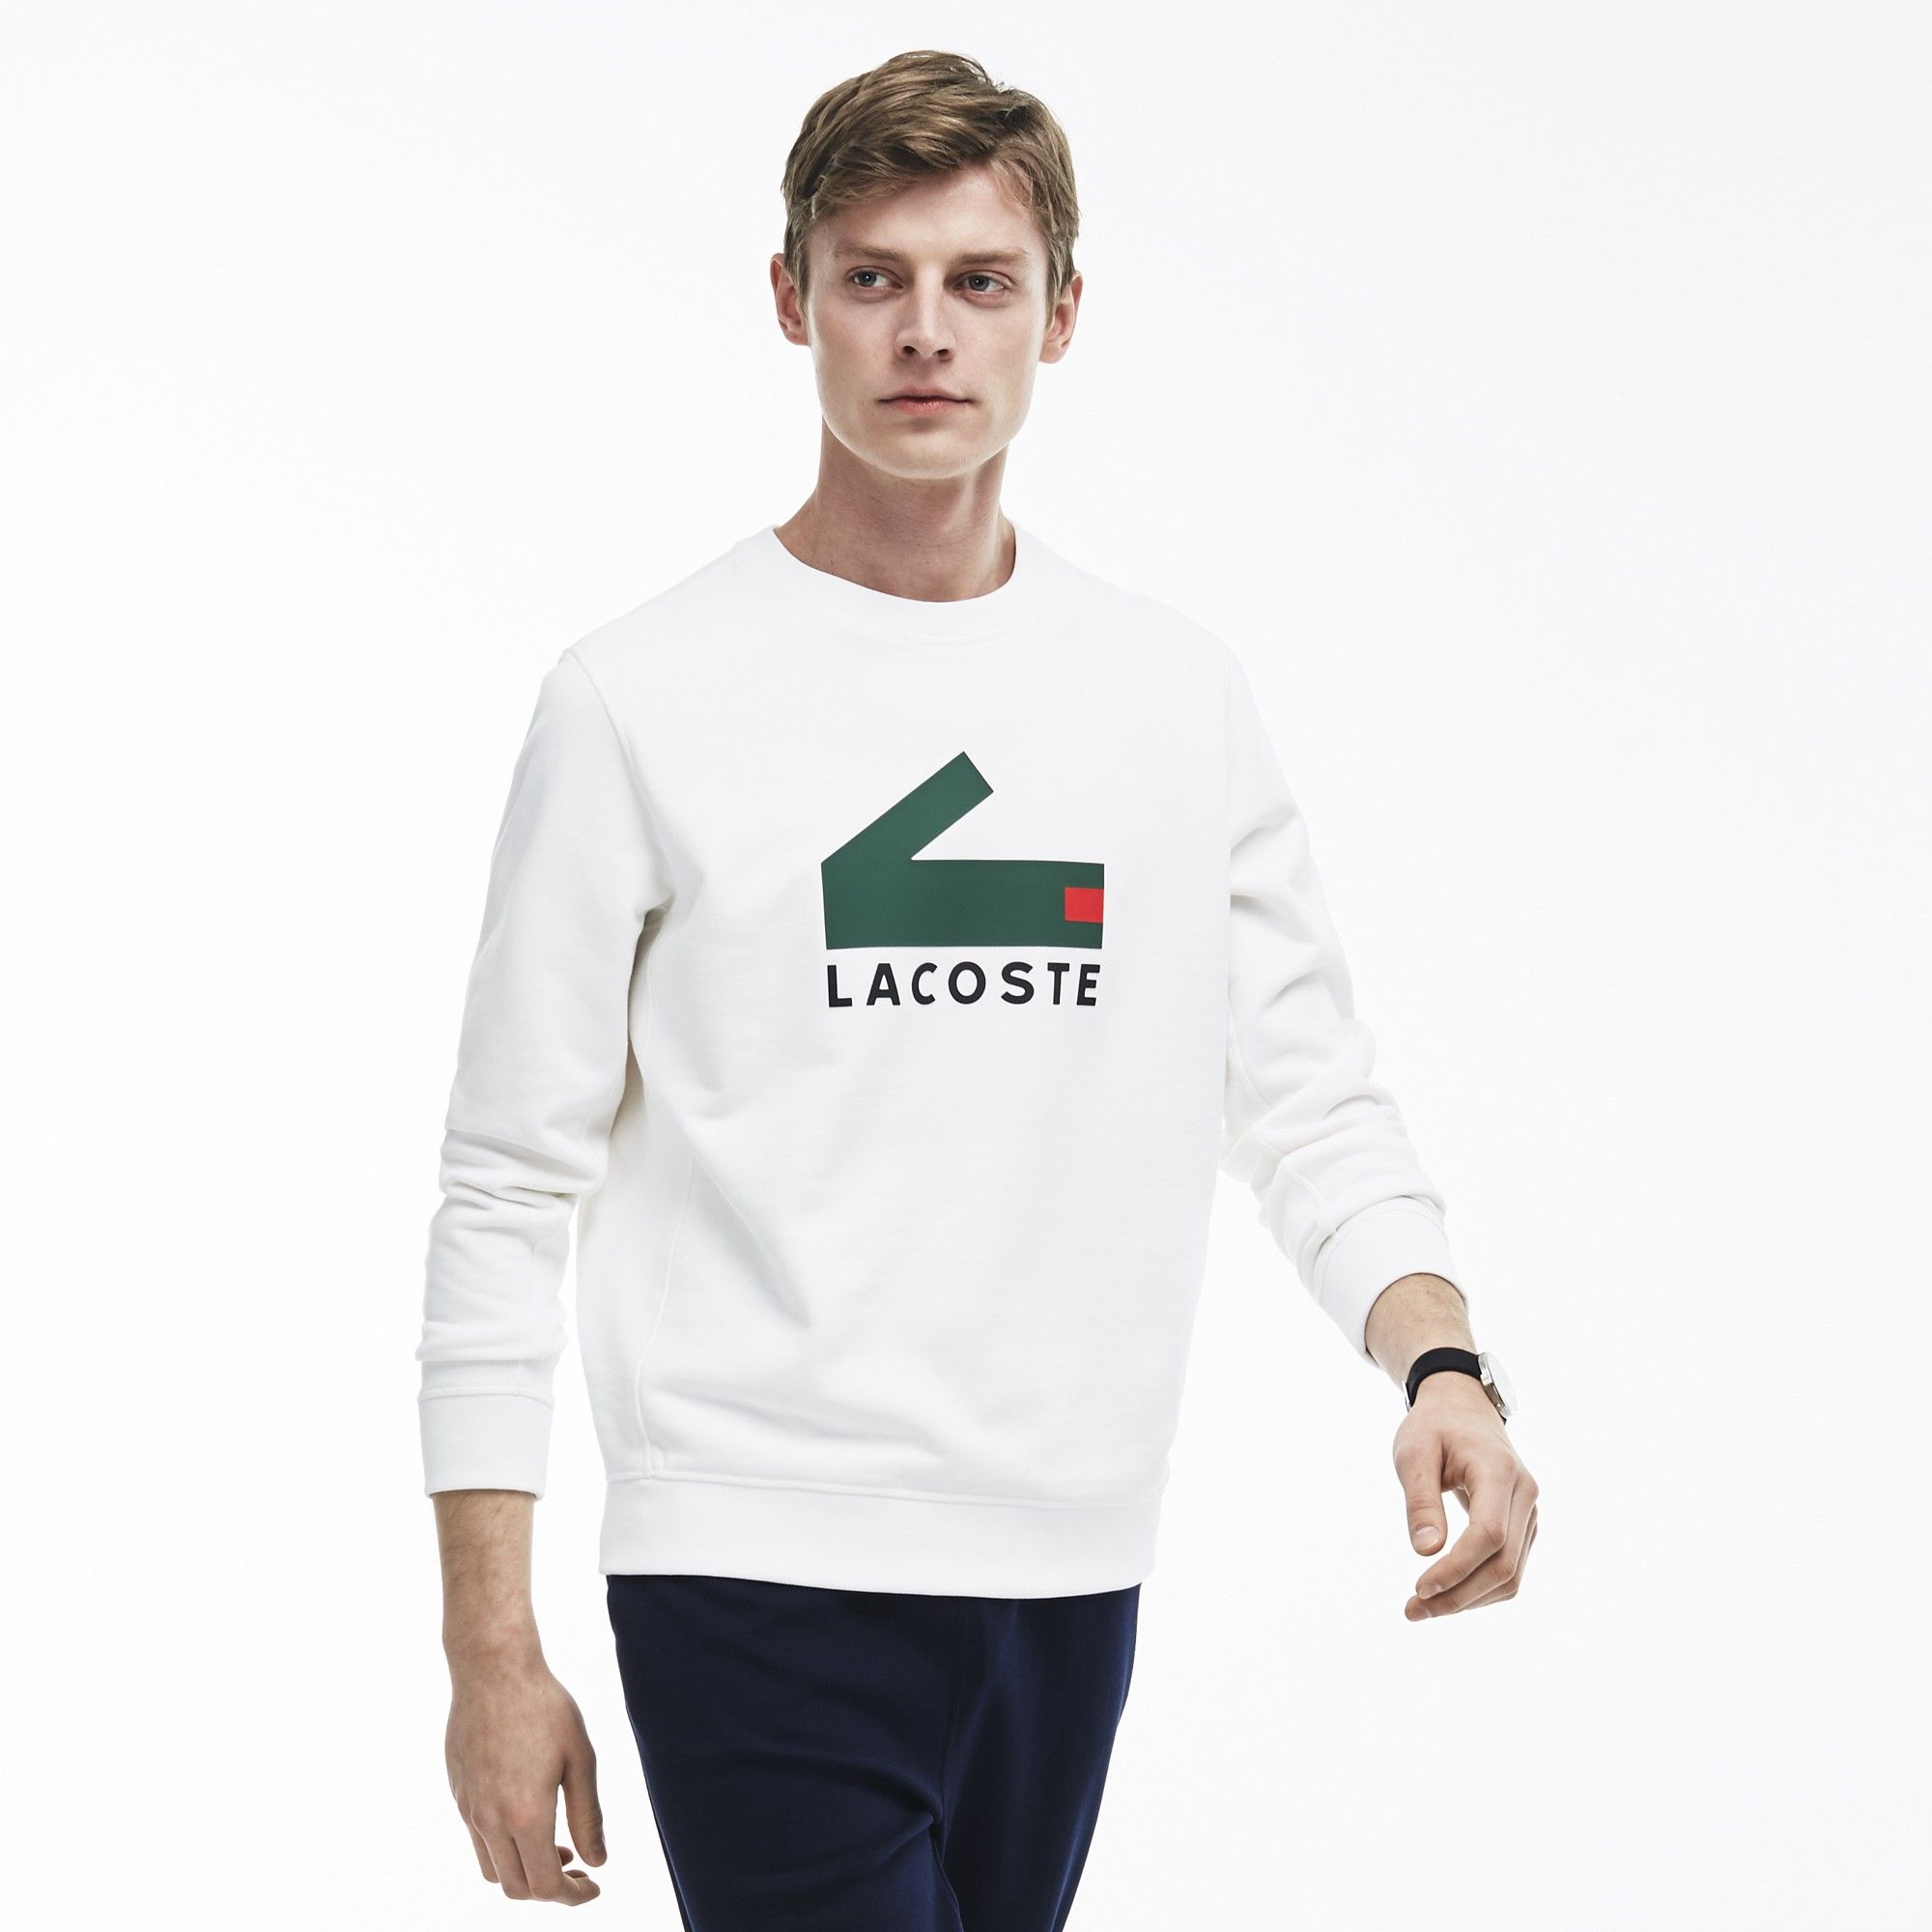 91223b9ca46d LACOSTE Men s Crocodile Print Cotton Fleece Sweatshirt - white.  lacoste   cloth